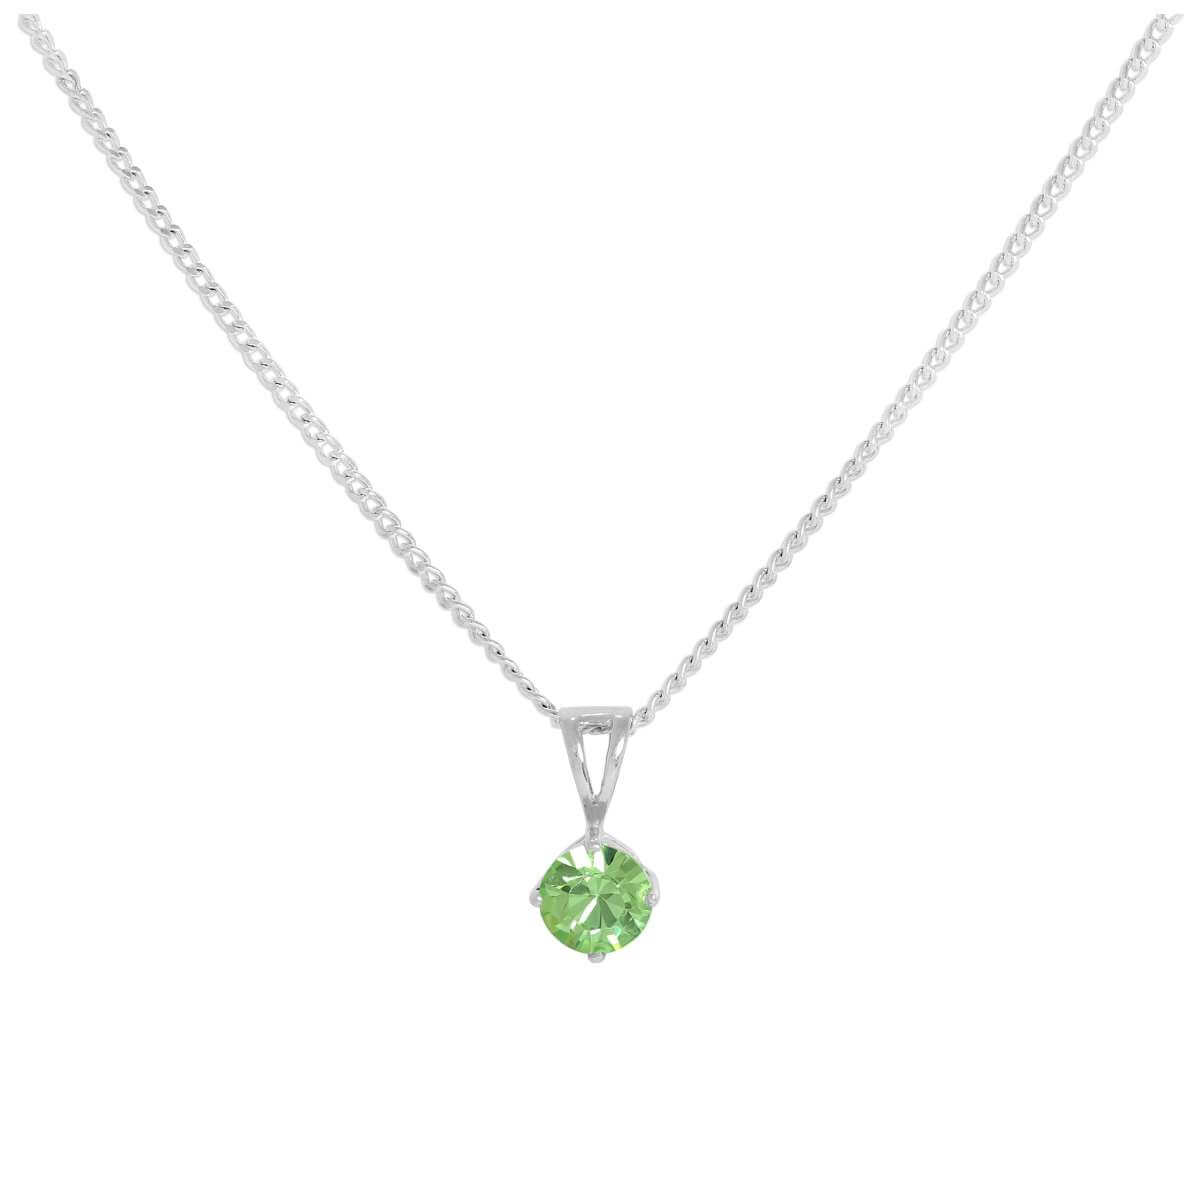 Sterling Silver & Peridot Crystal Made with Swarovski Elements August Birthstone Pendant Necklace 16 - 24 Inches